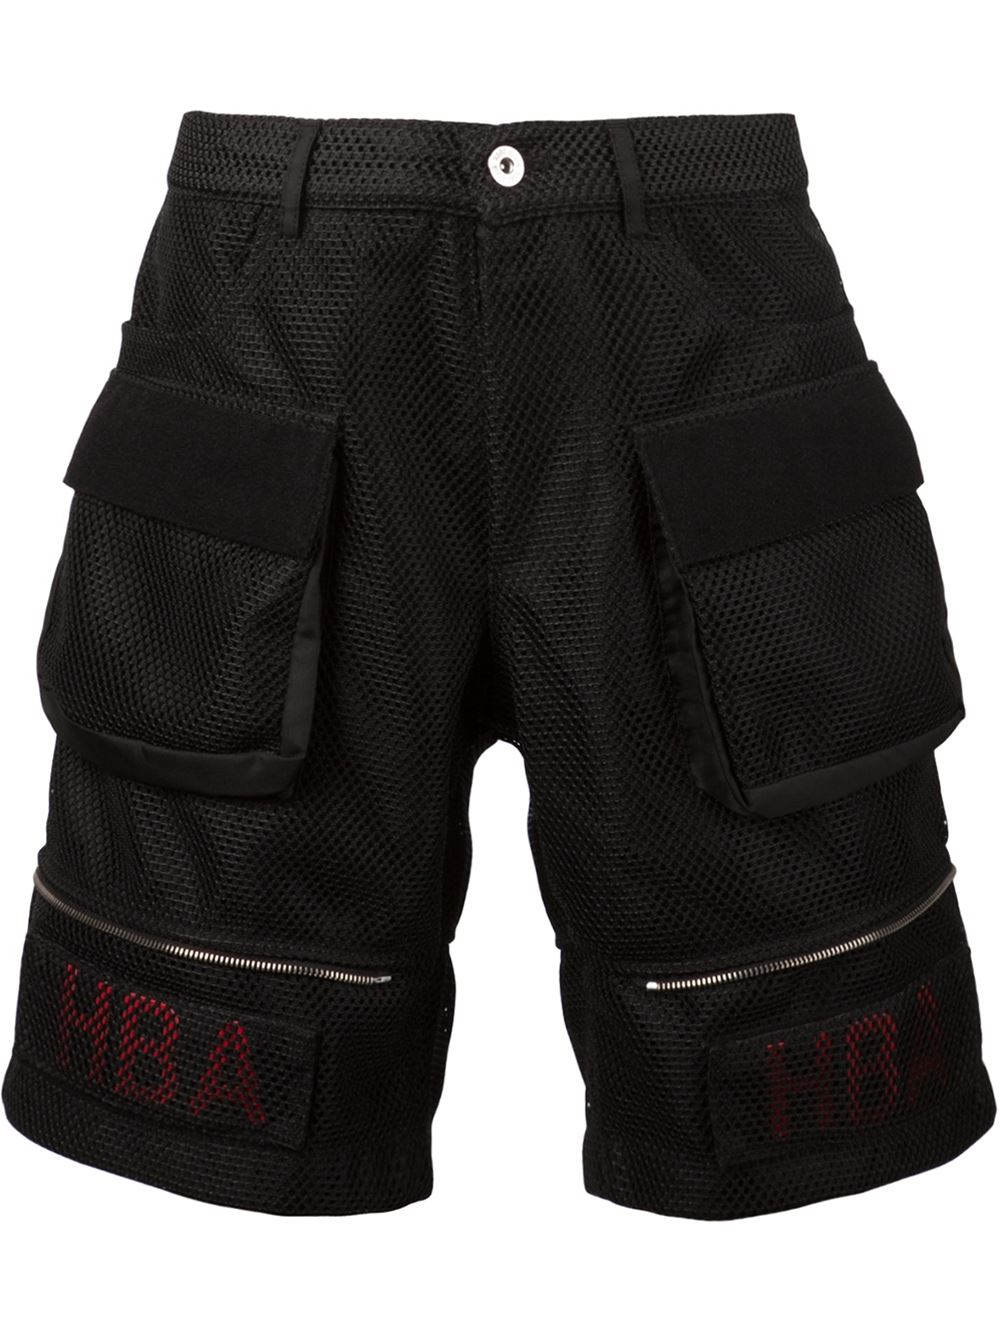 hood by air mesh cargo shorts in black for men lyst